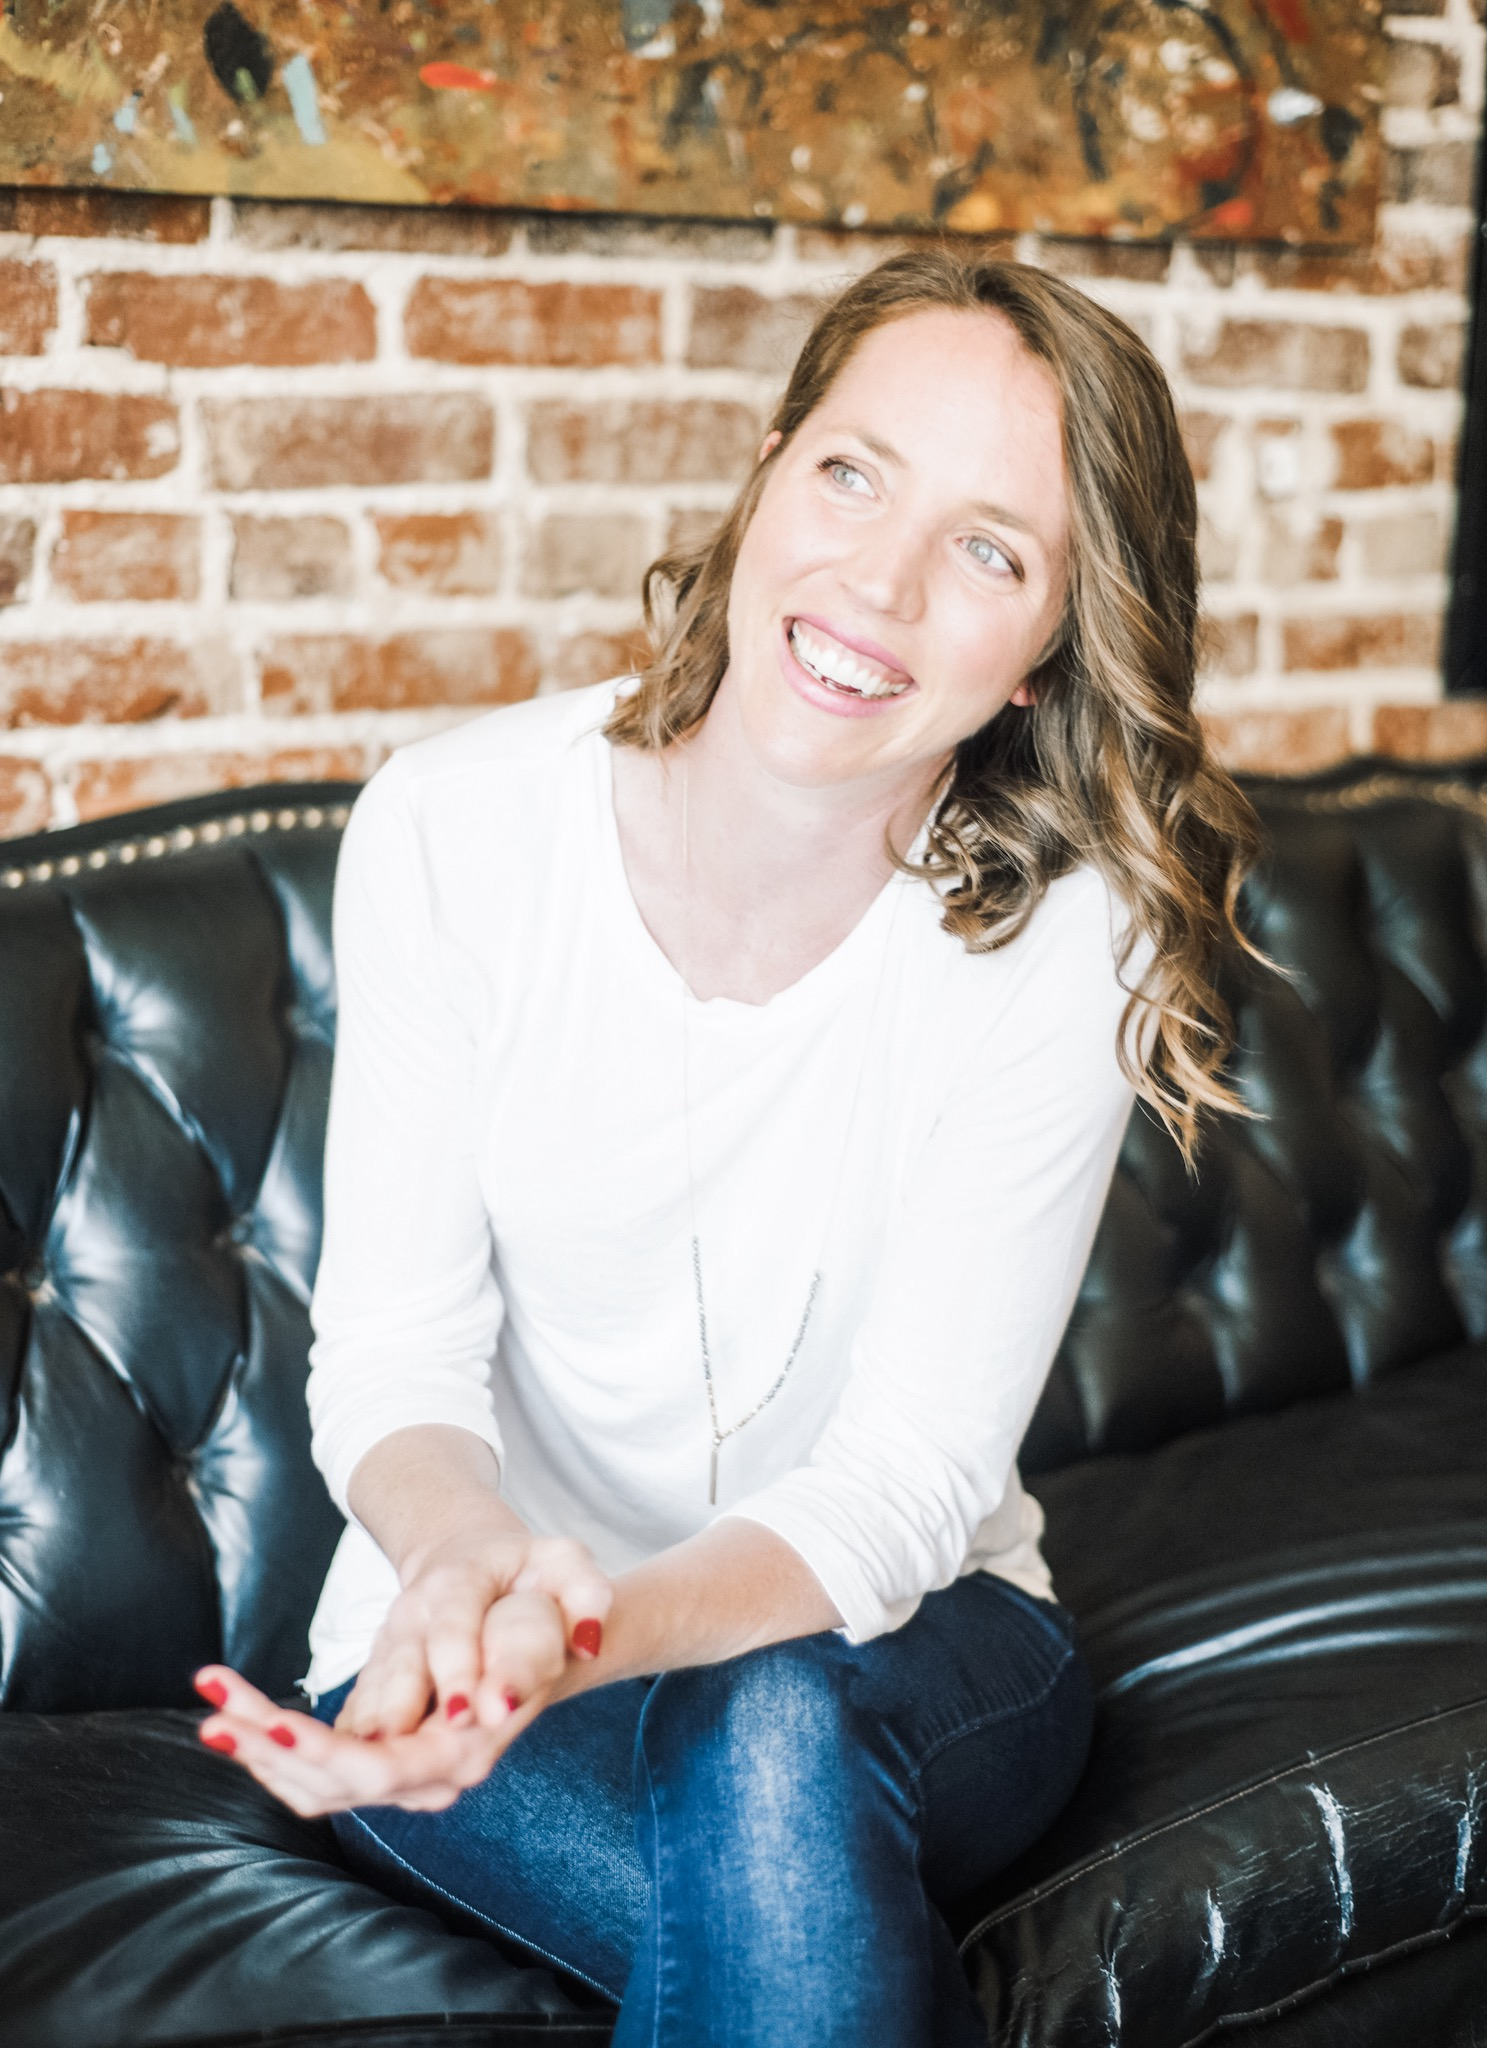 Helping new business owners launch brands with heart. - It's never been a better time to launch a brand online, build a tribe, and be your own boss. I help creatives tap into their potential and build a life and brand they are absolutely obsessed with by offering web design, branding, and creative services.